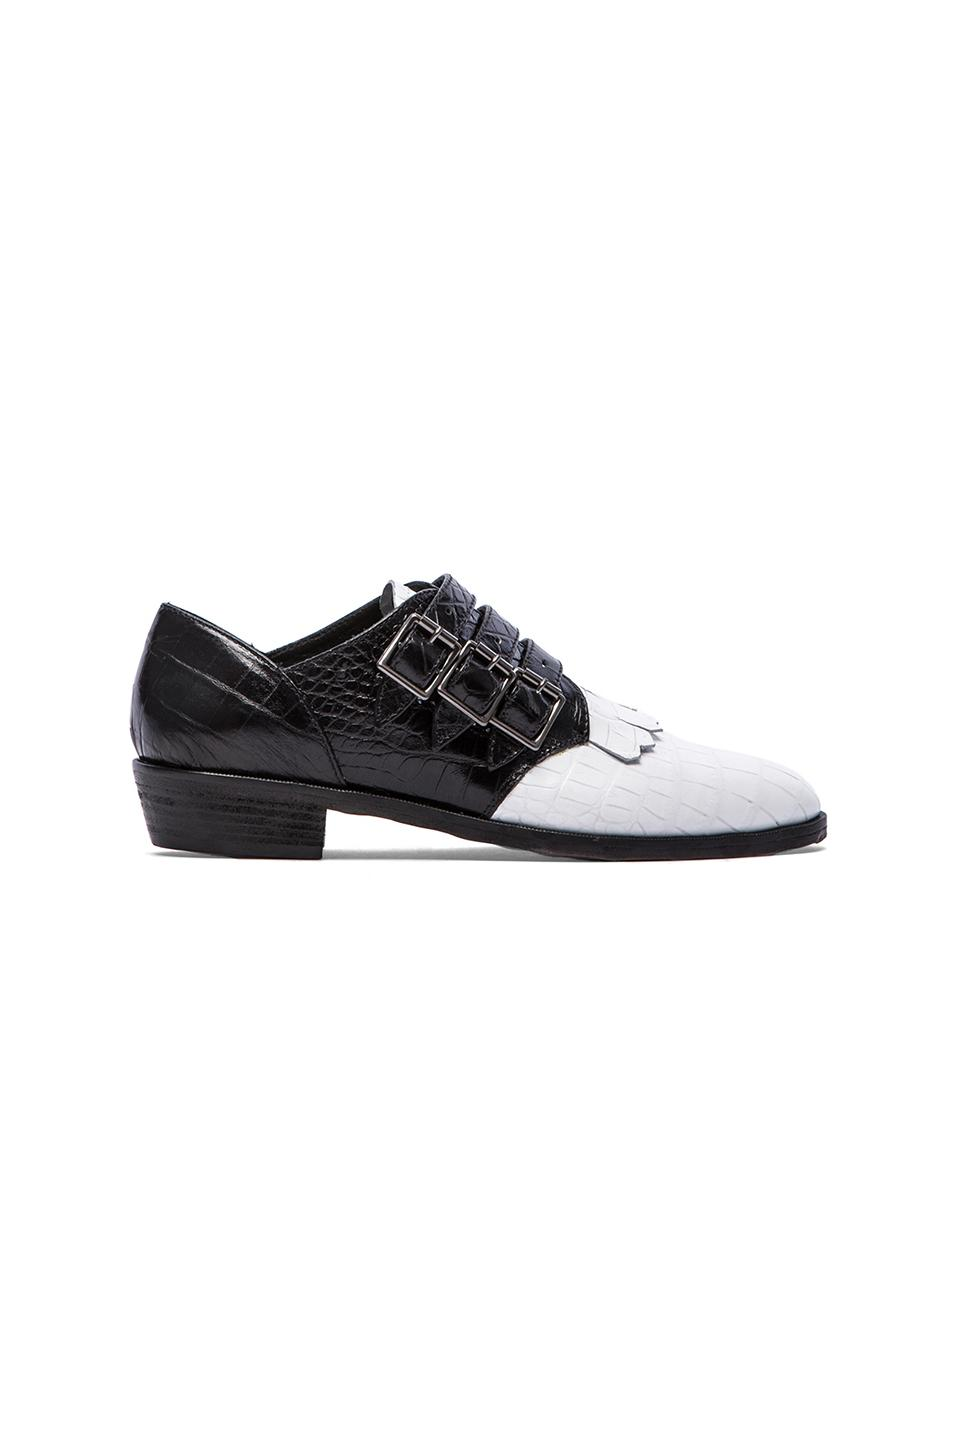 Modern Vice - Chaussures(128 €)